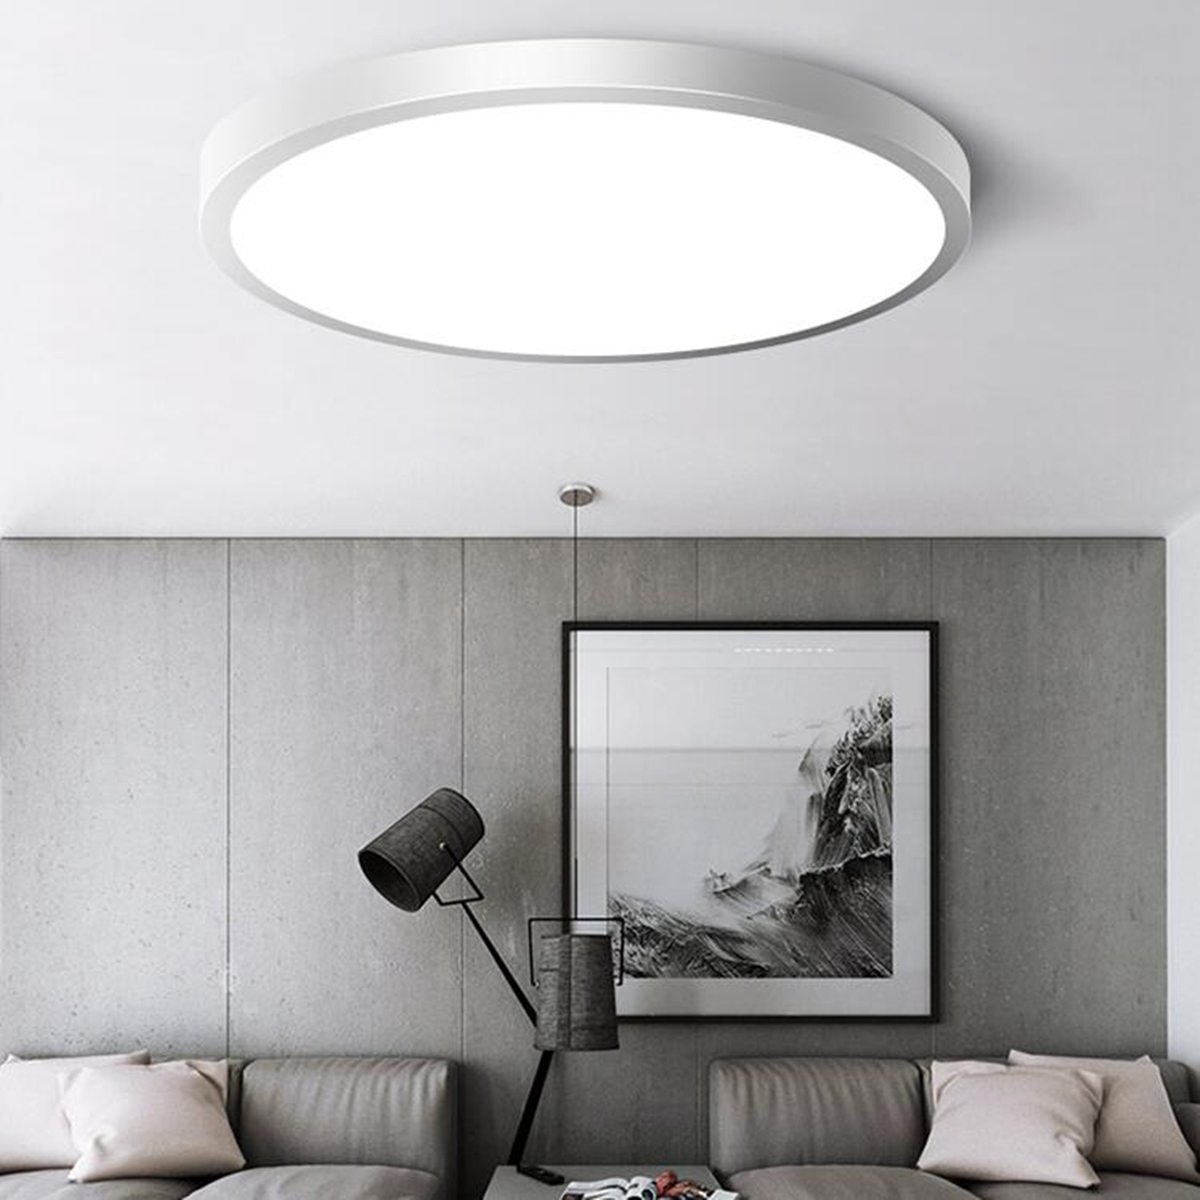 Lights & Lighting Iralan Led Ceiling Light Modern Nature Rose Design Living Room Bedroom Kitchen Dining Room Lighting Fixture Icfw1909